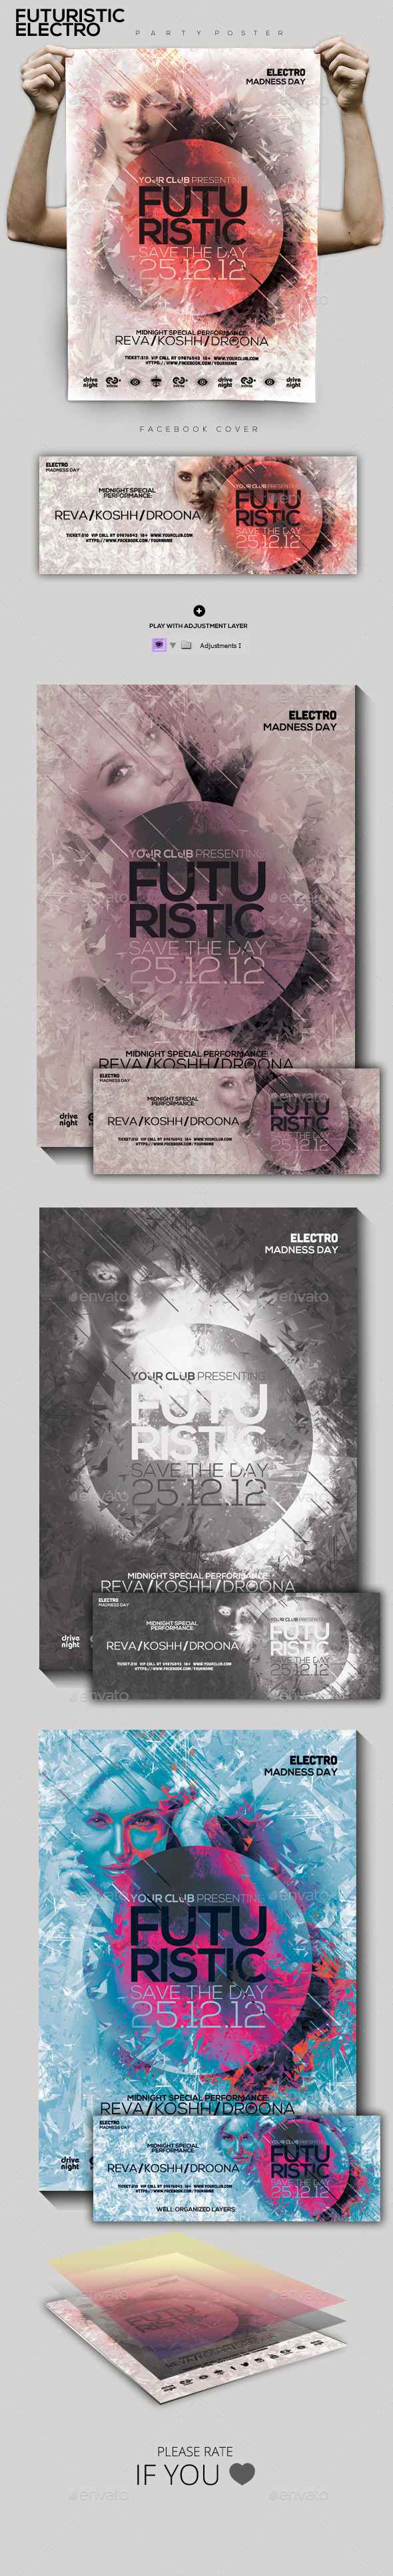 GraphicRiver Futuristic Electro Party Flyer Poster 9778120